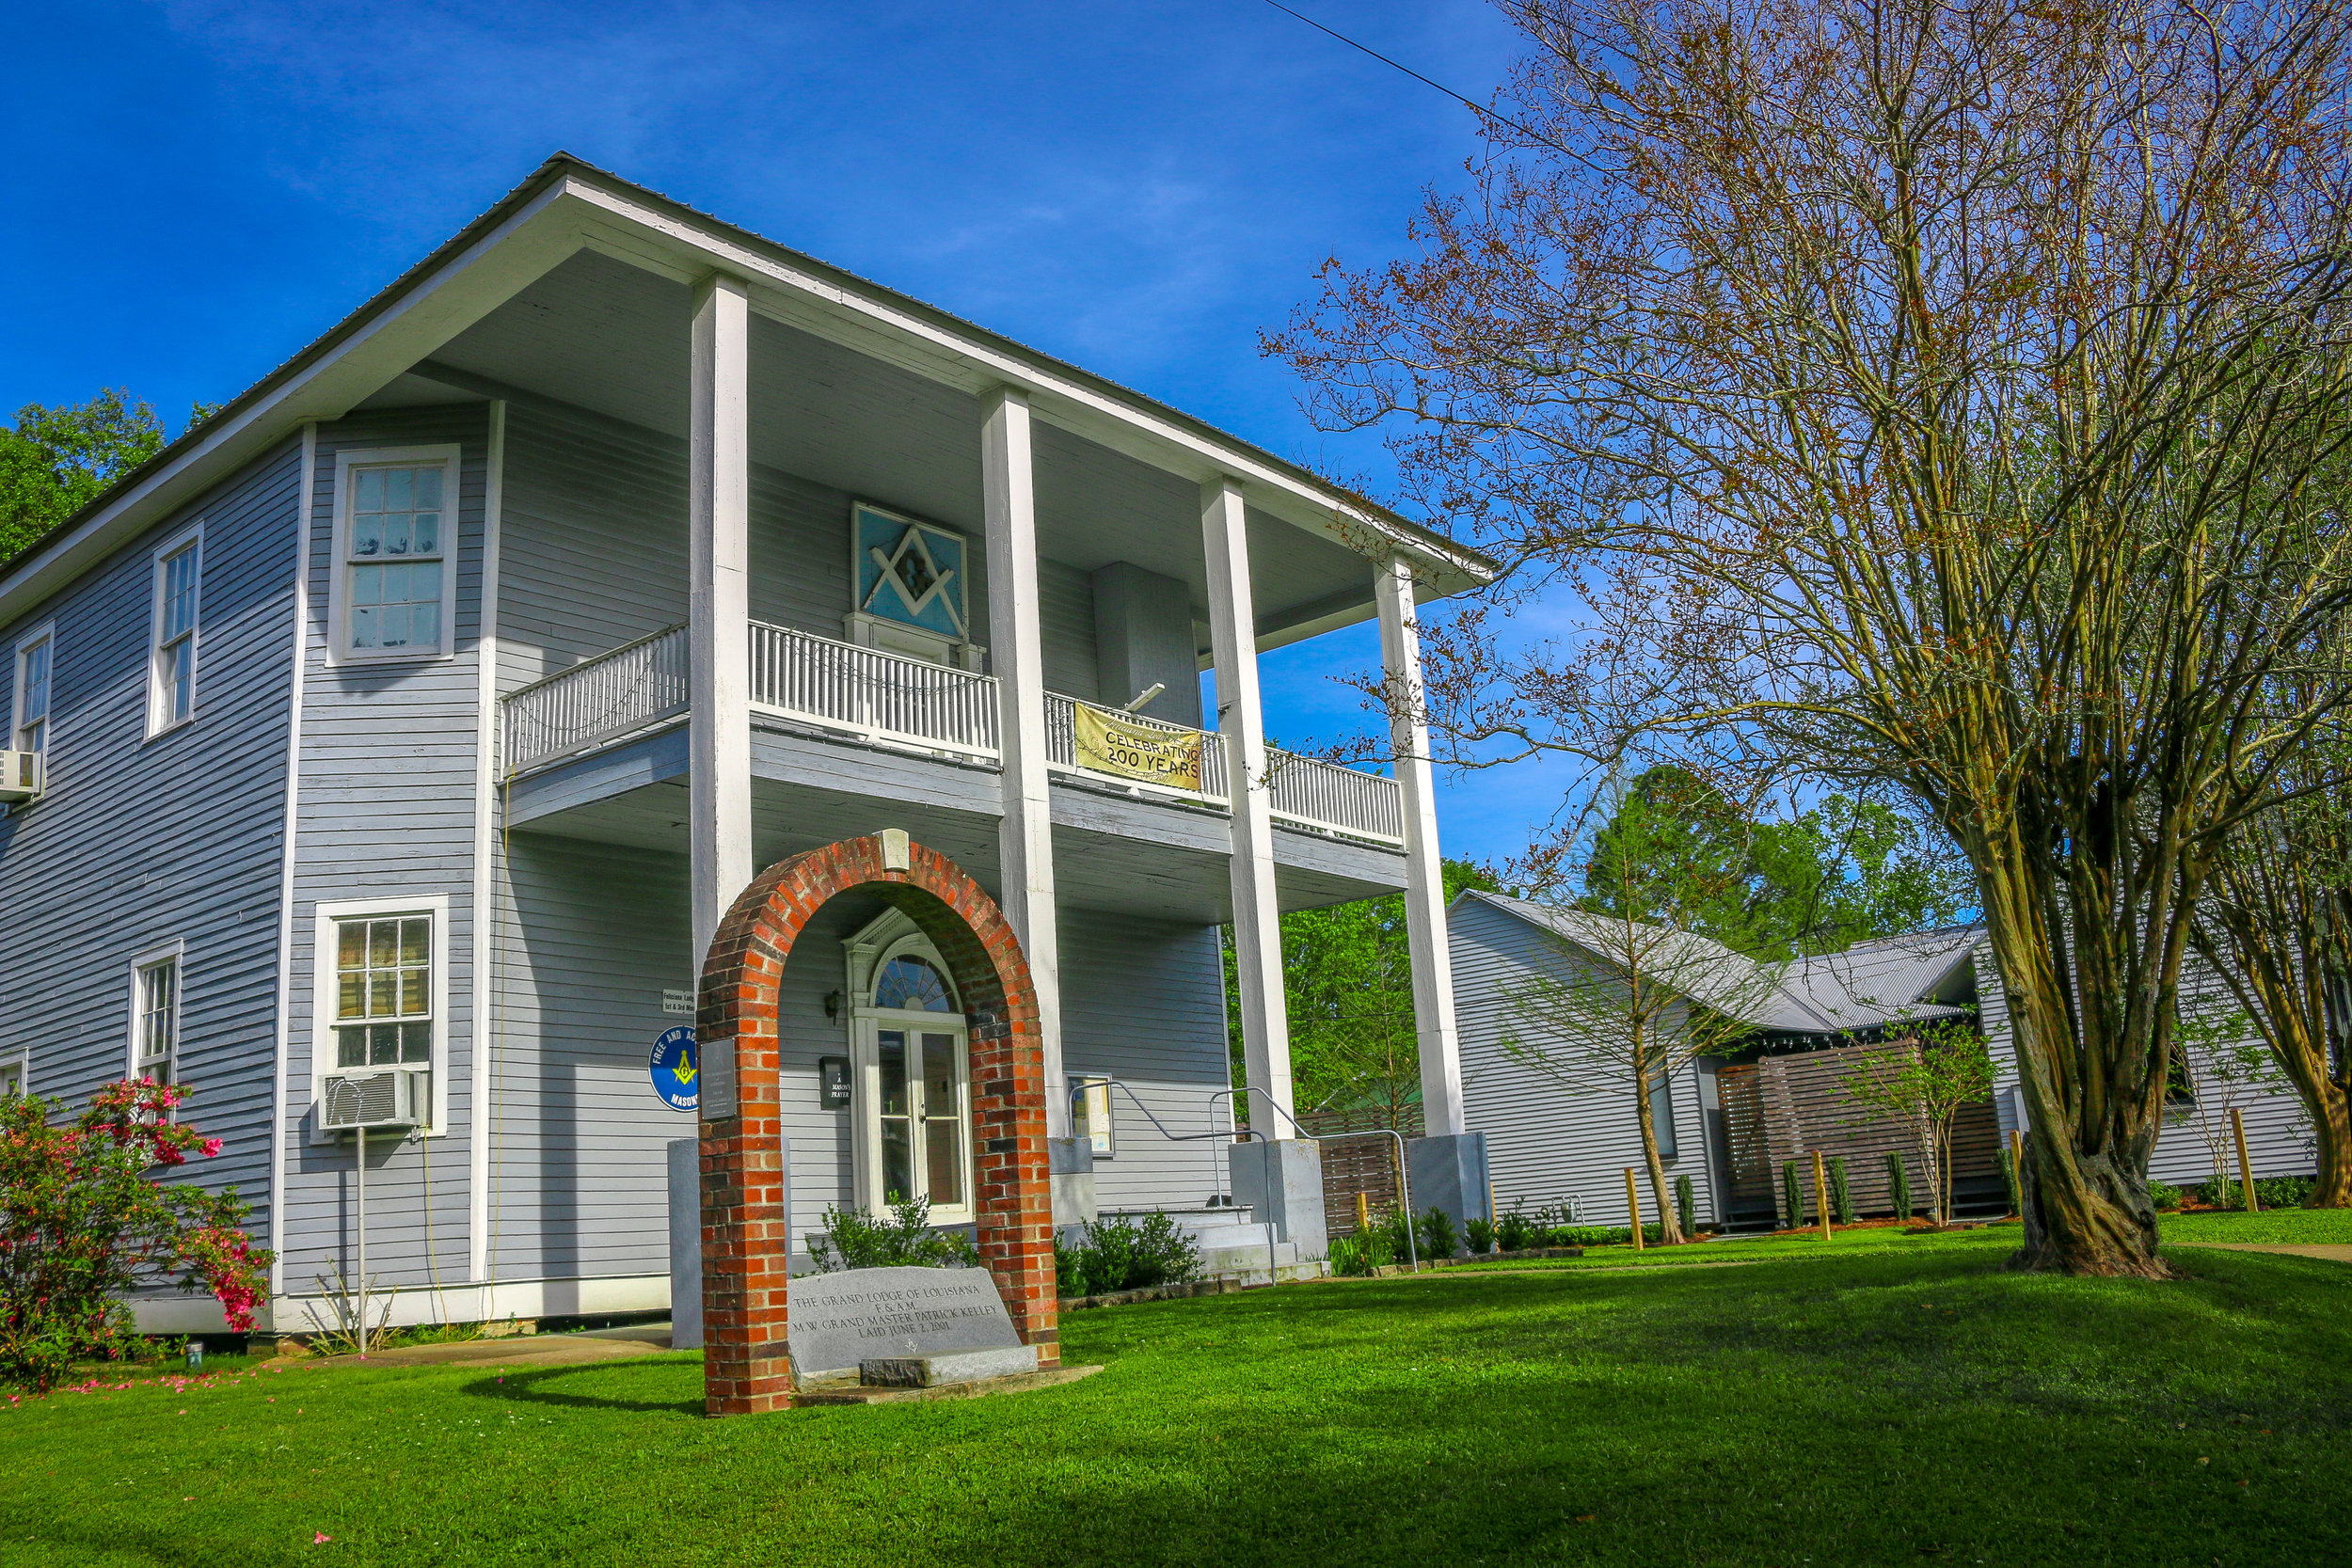 Historic St. Francisville Louisiana LA West Feliciana Parish